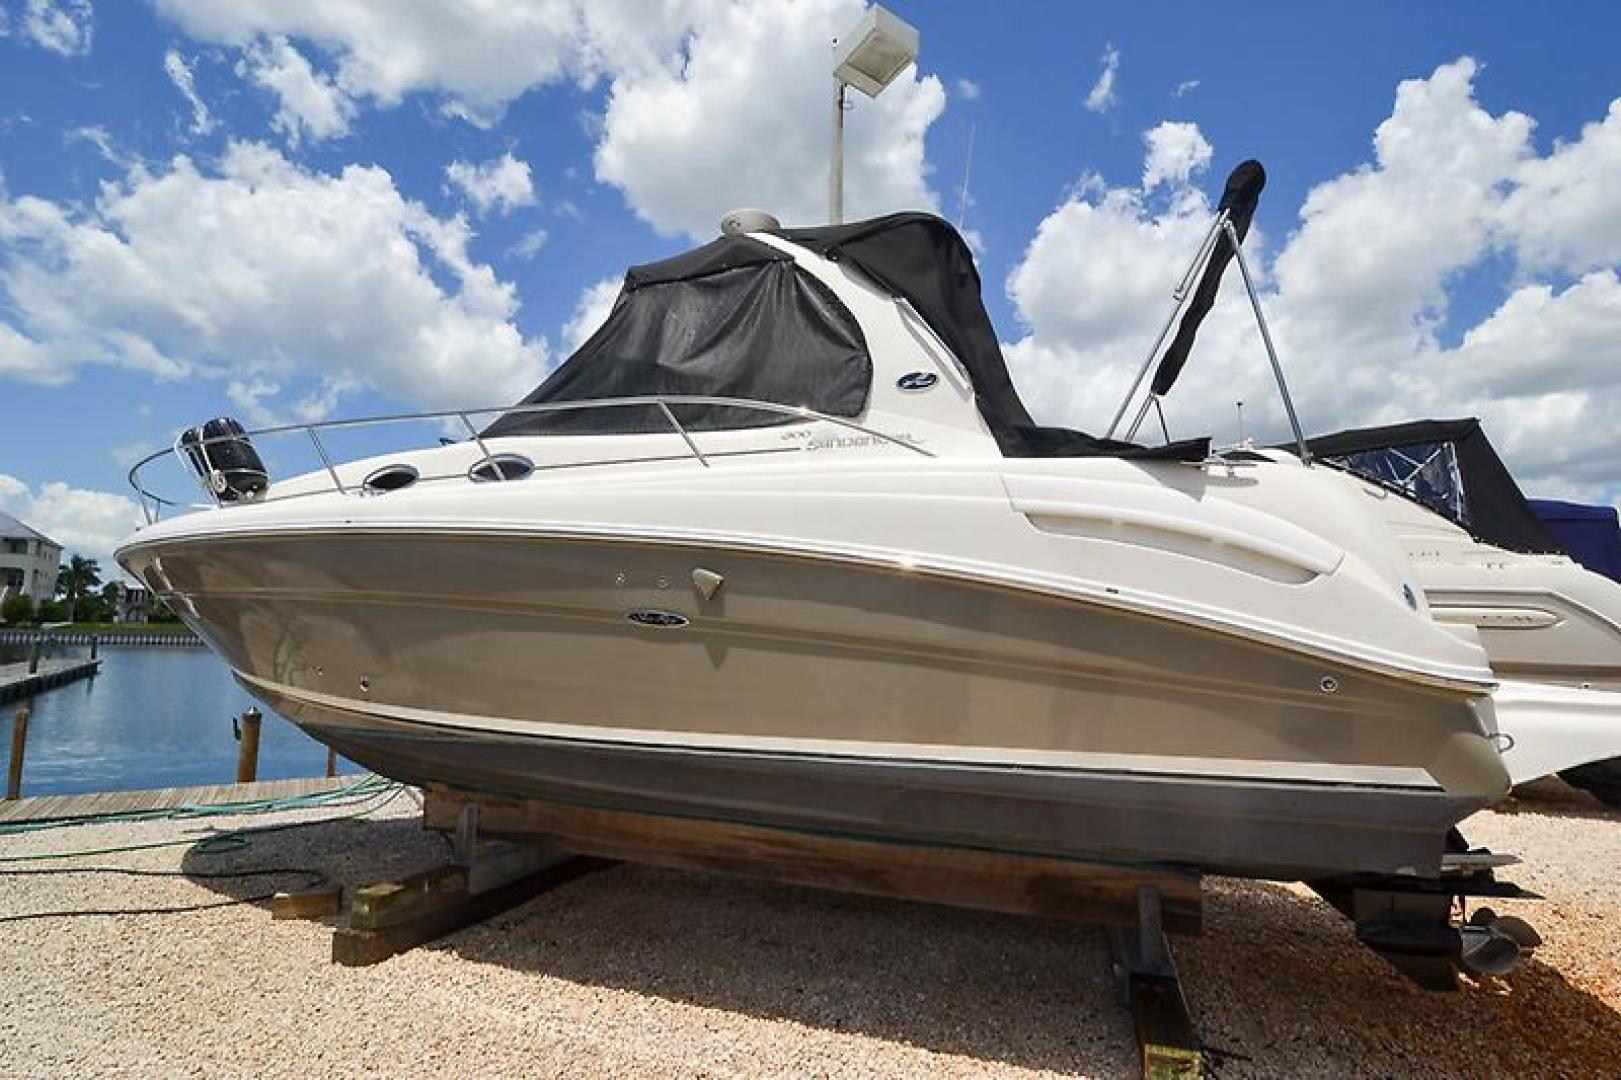 2006 Sea Ray 300 Sundancer-3-2.jpg